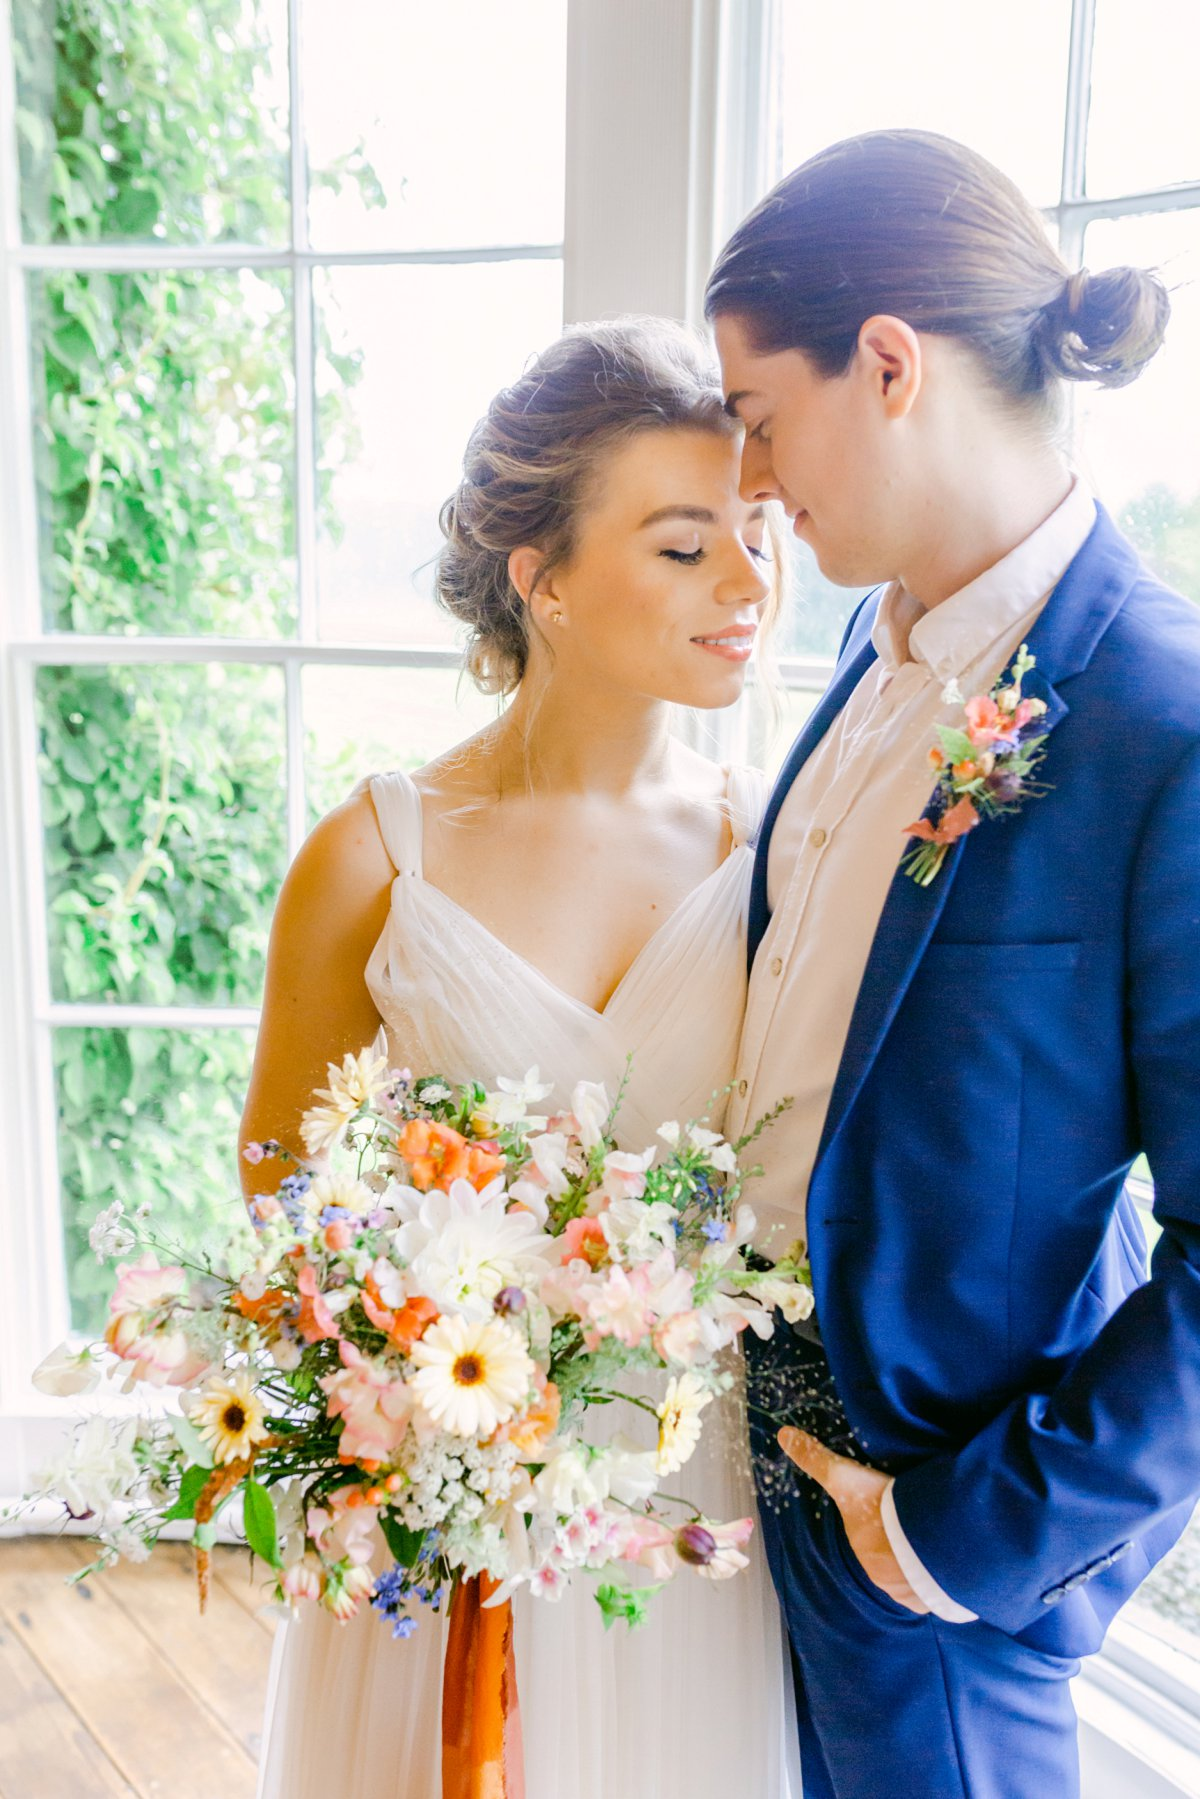 A Styled Wedding Shoot at Town Head Estate Windermere (c) Ailsa Reeve Photography (6)